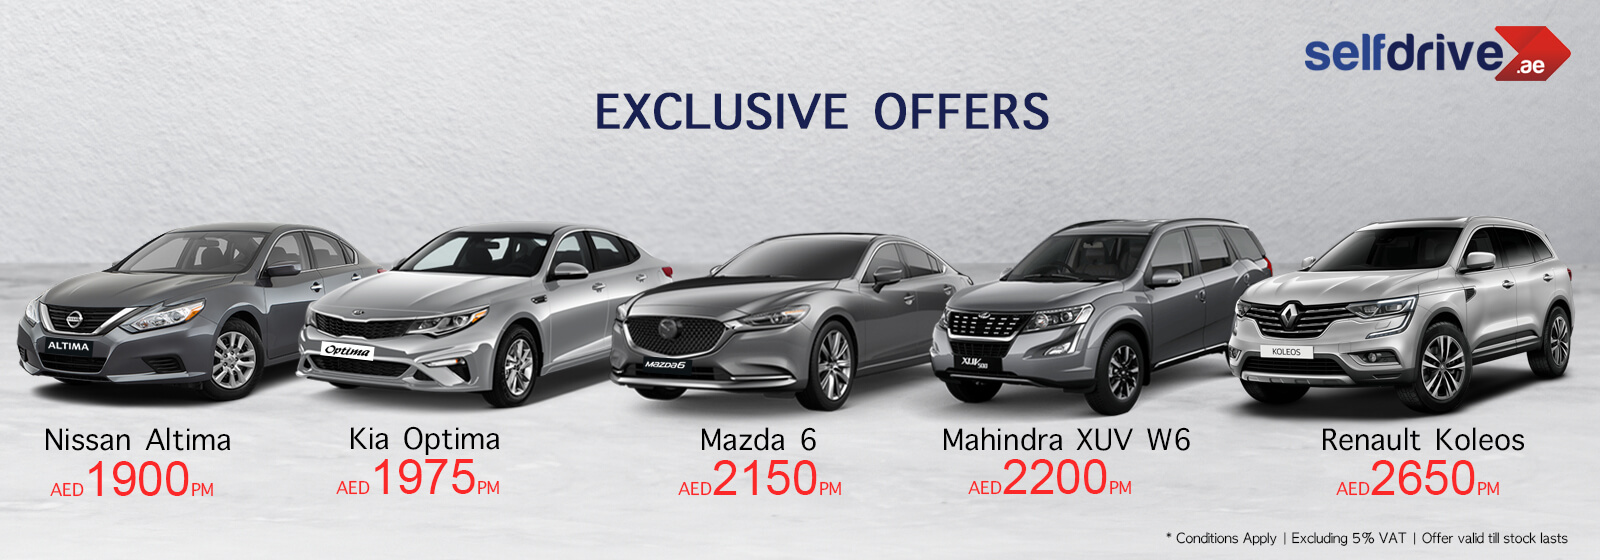 Exclusive offer for wide range of Cars